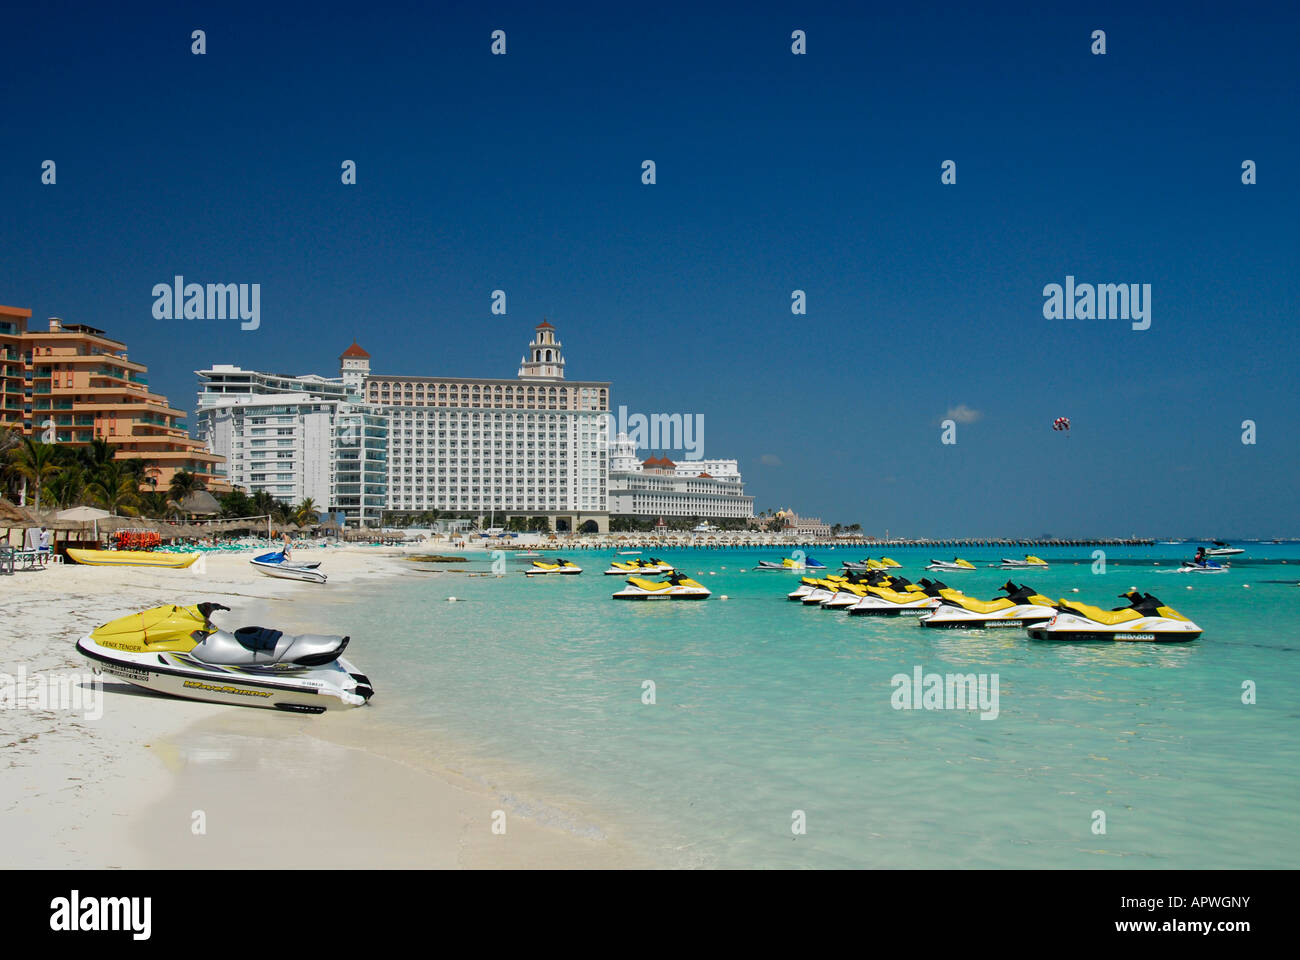 Sandy beach with jetskis in Cancun hotel and resort area, Quintana Roo State, Mexico, North America Stock Photo